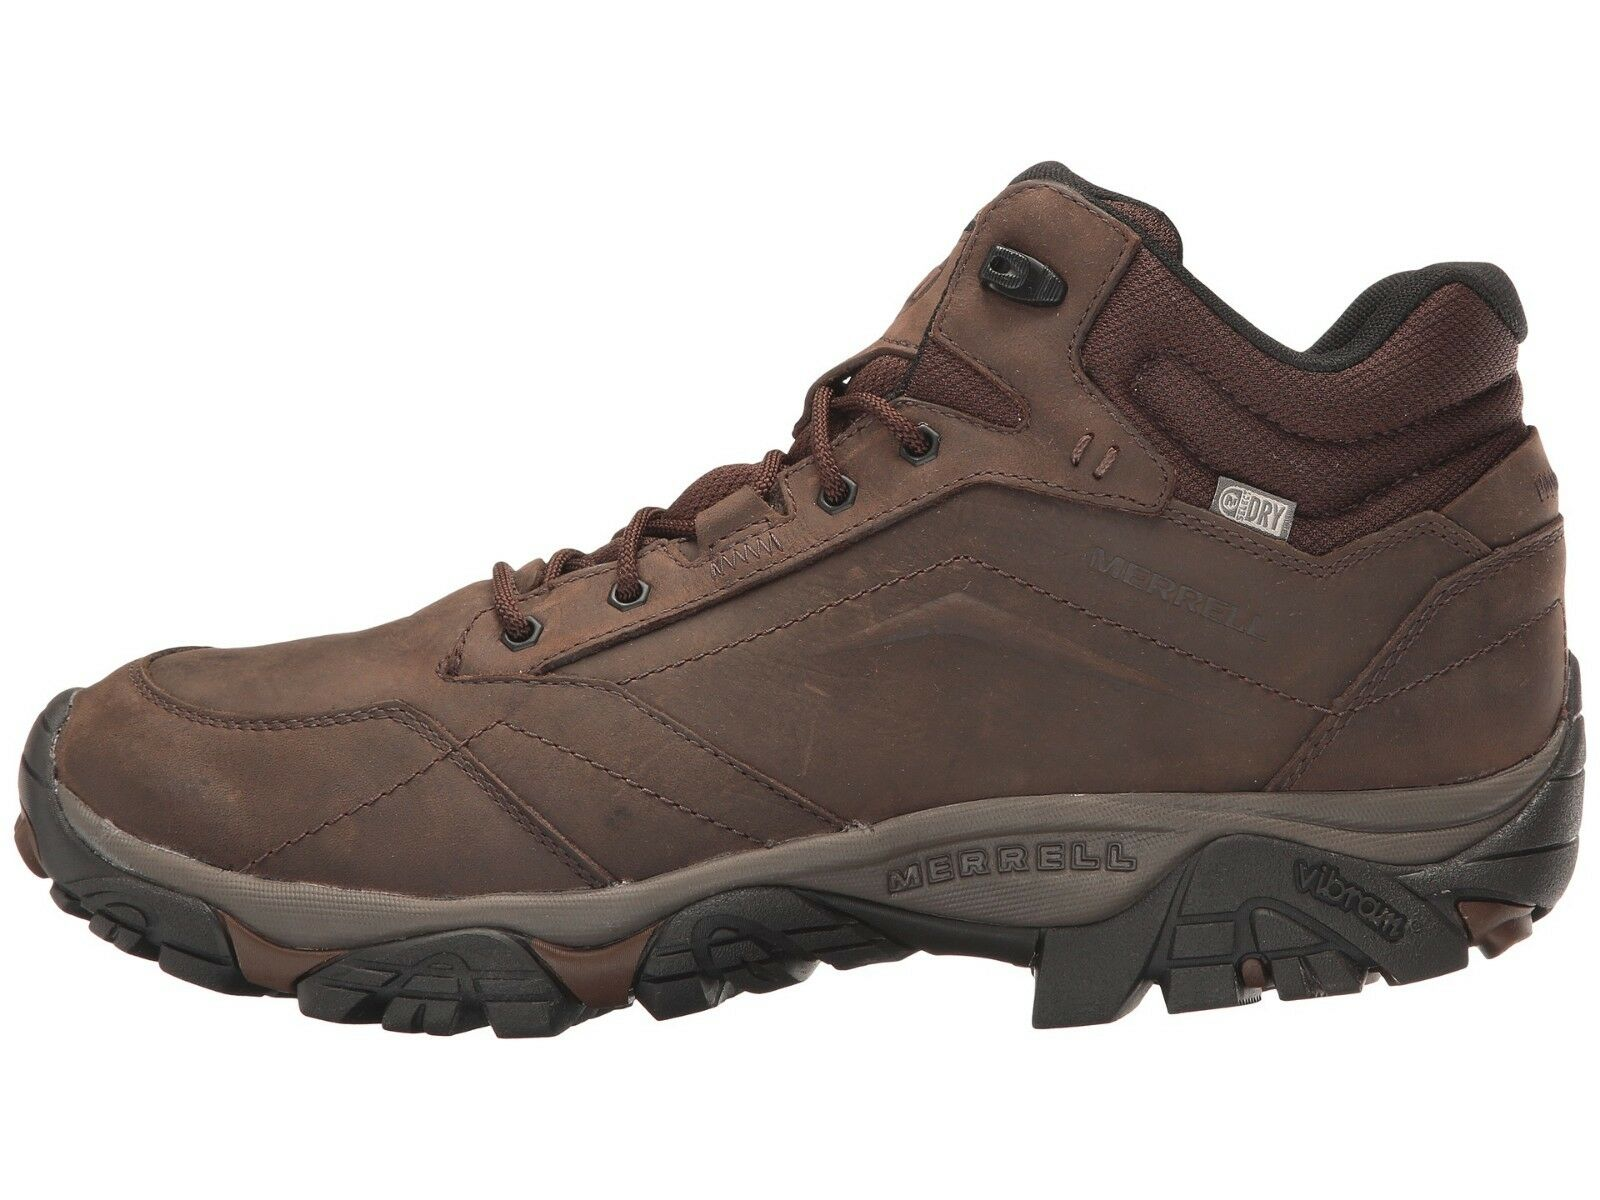 8701c1f3f22a Merrell Moab Adventure Waterproof Hiking Boots Boots Boots - Size 11 1 2  f540f3